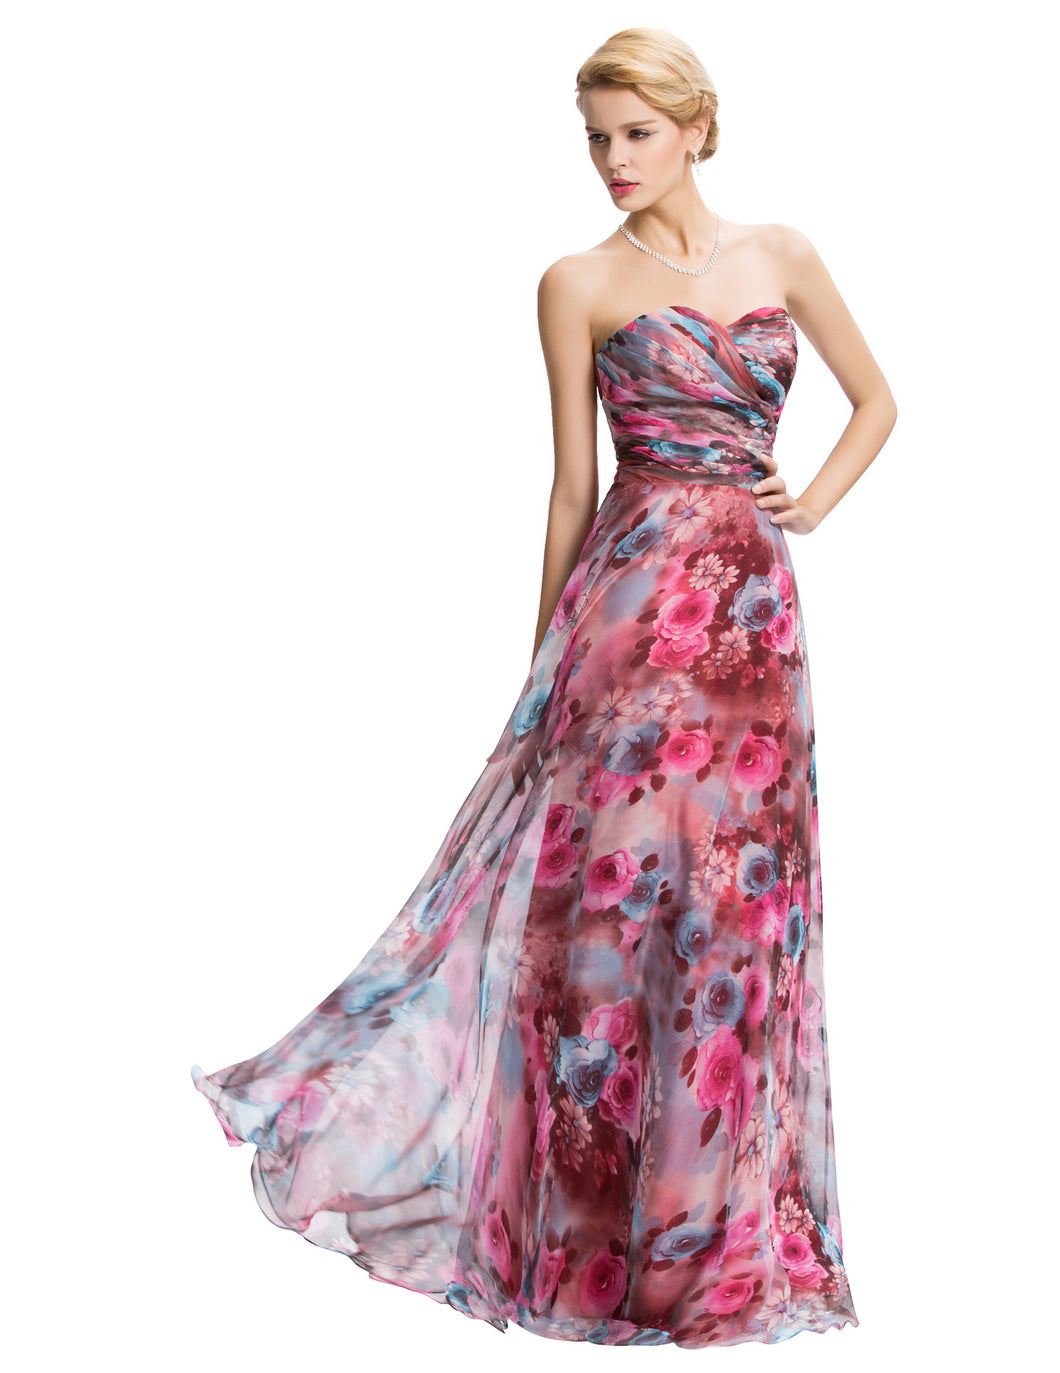 GK571 - Ladies Long Floral Strapless Formal Wear